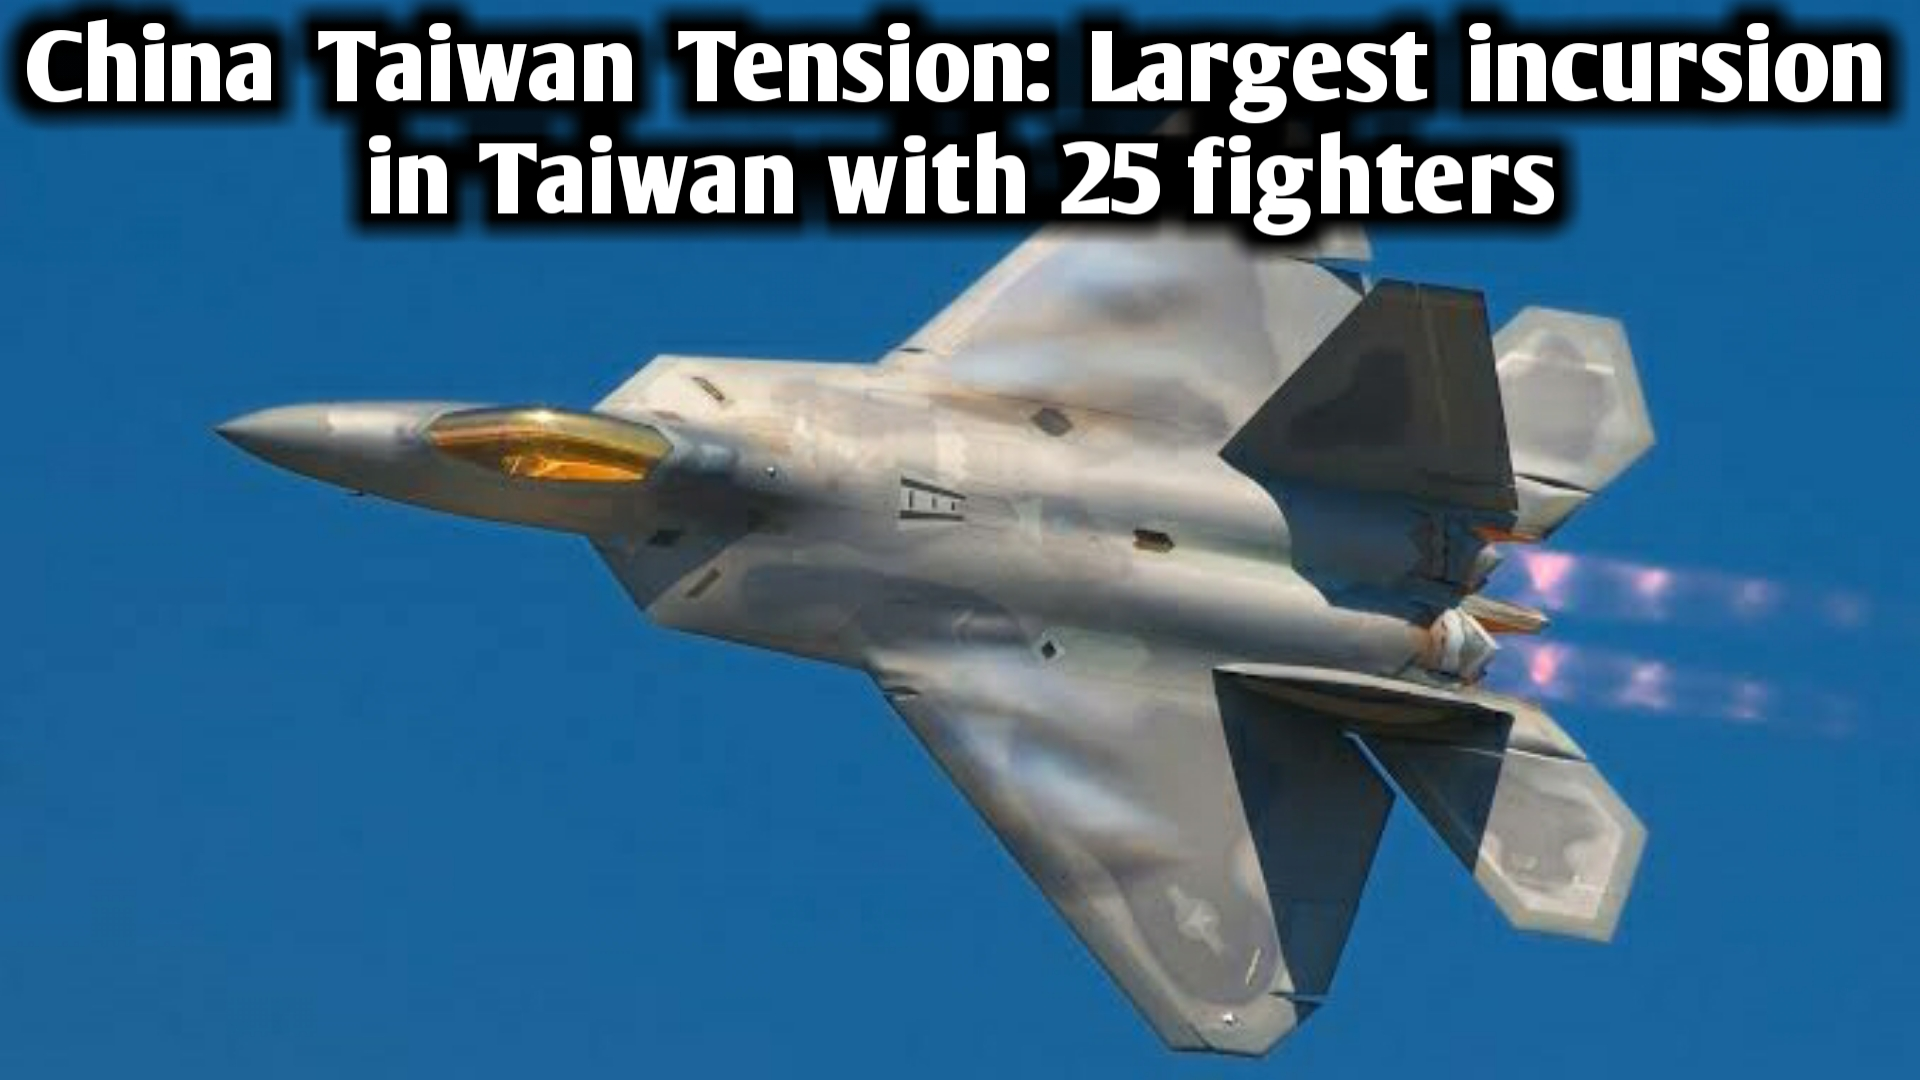 China Taiwan Tension: Biggest Infiltration in Taiwan with 25 Fighters